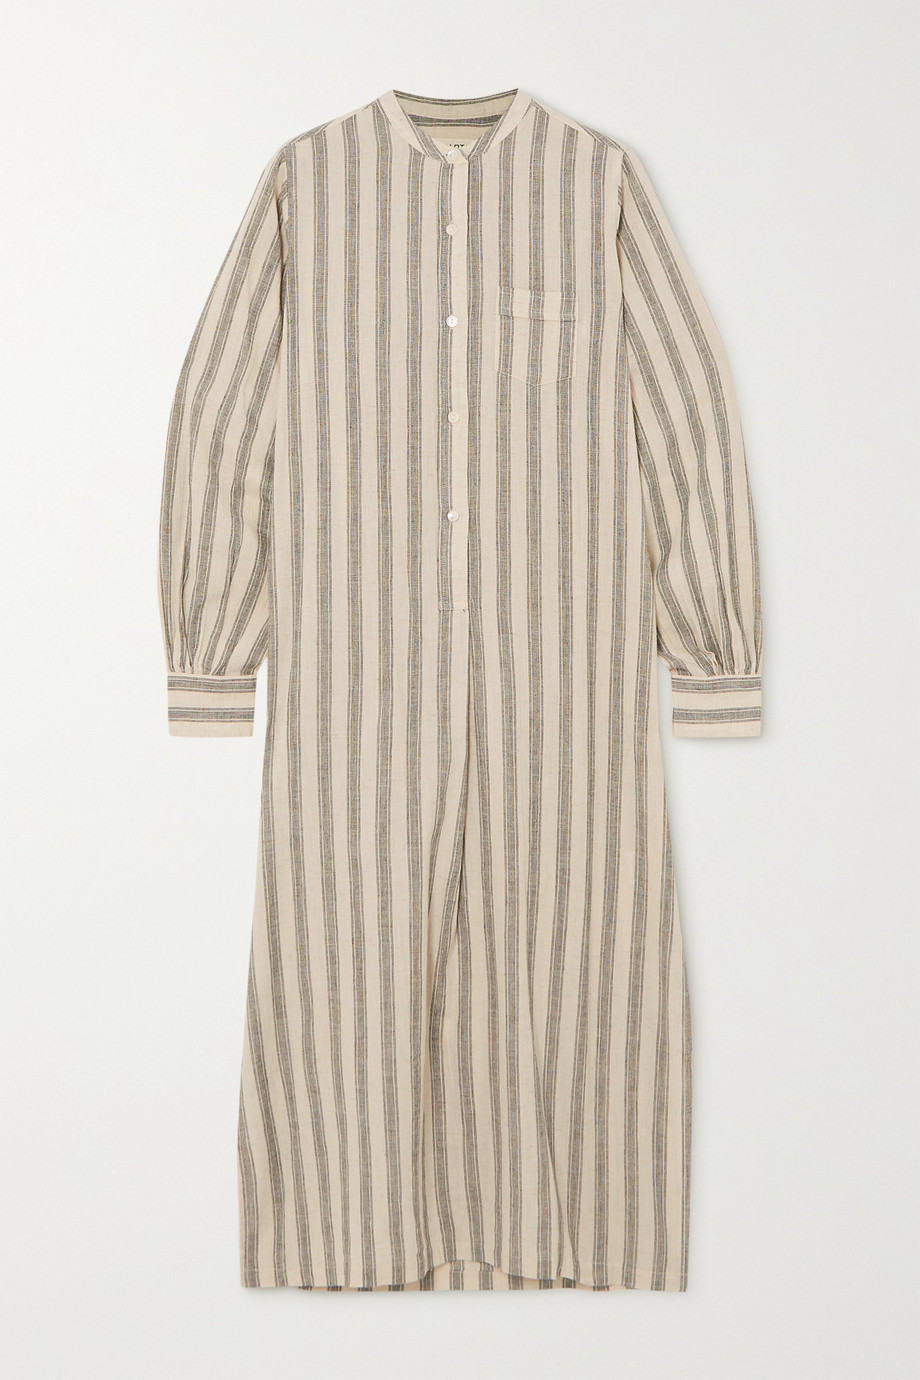 Nili Lotan Malia striped cotton and linen-blend midi shirt dress